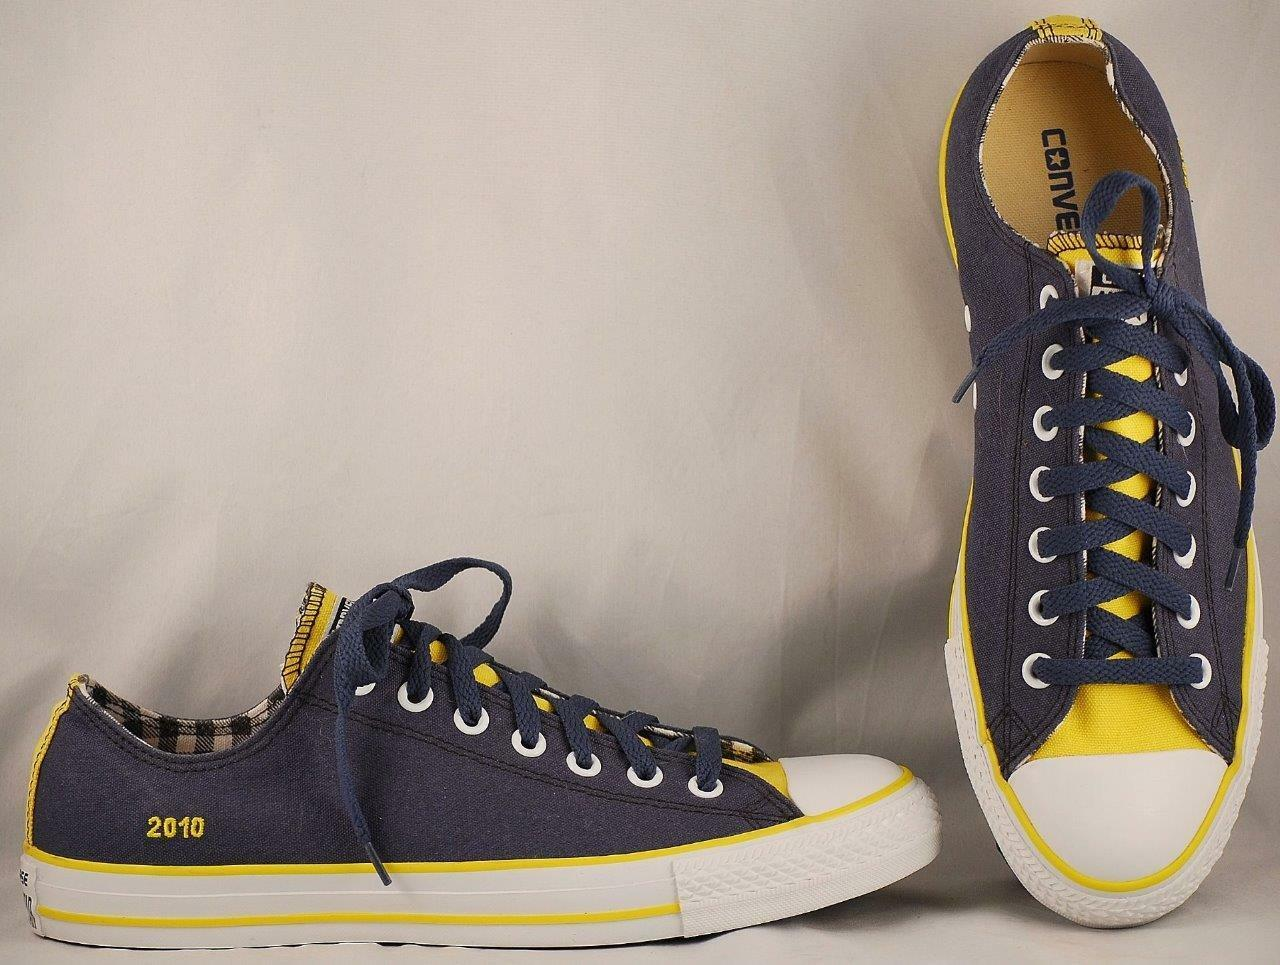 Men's Converse All Star Special Edition 2010 Casual Sneakers US 9.5 EUR 43